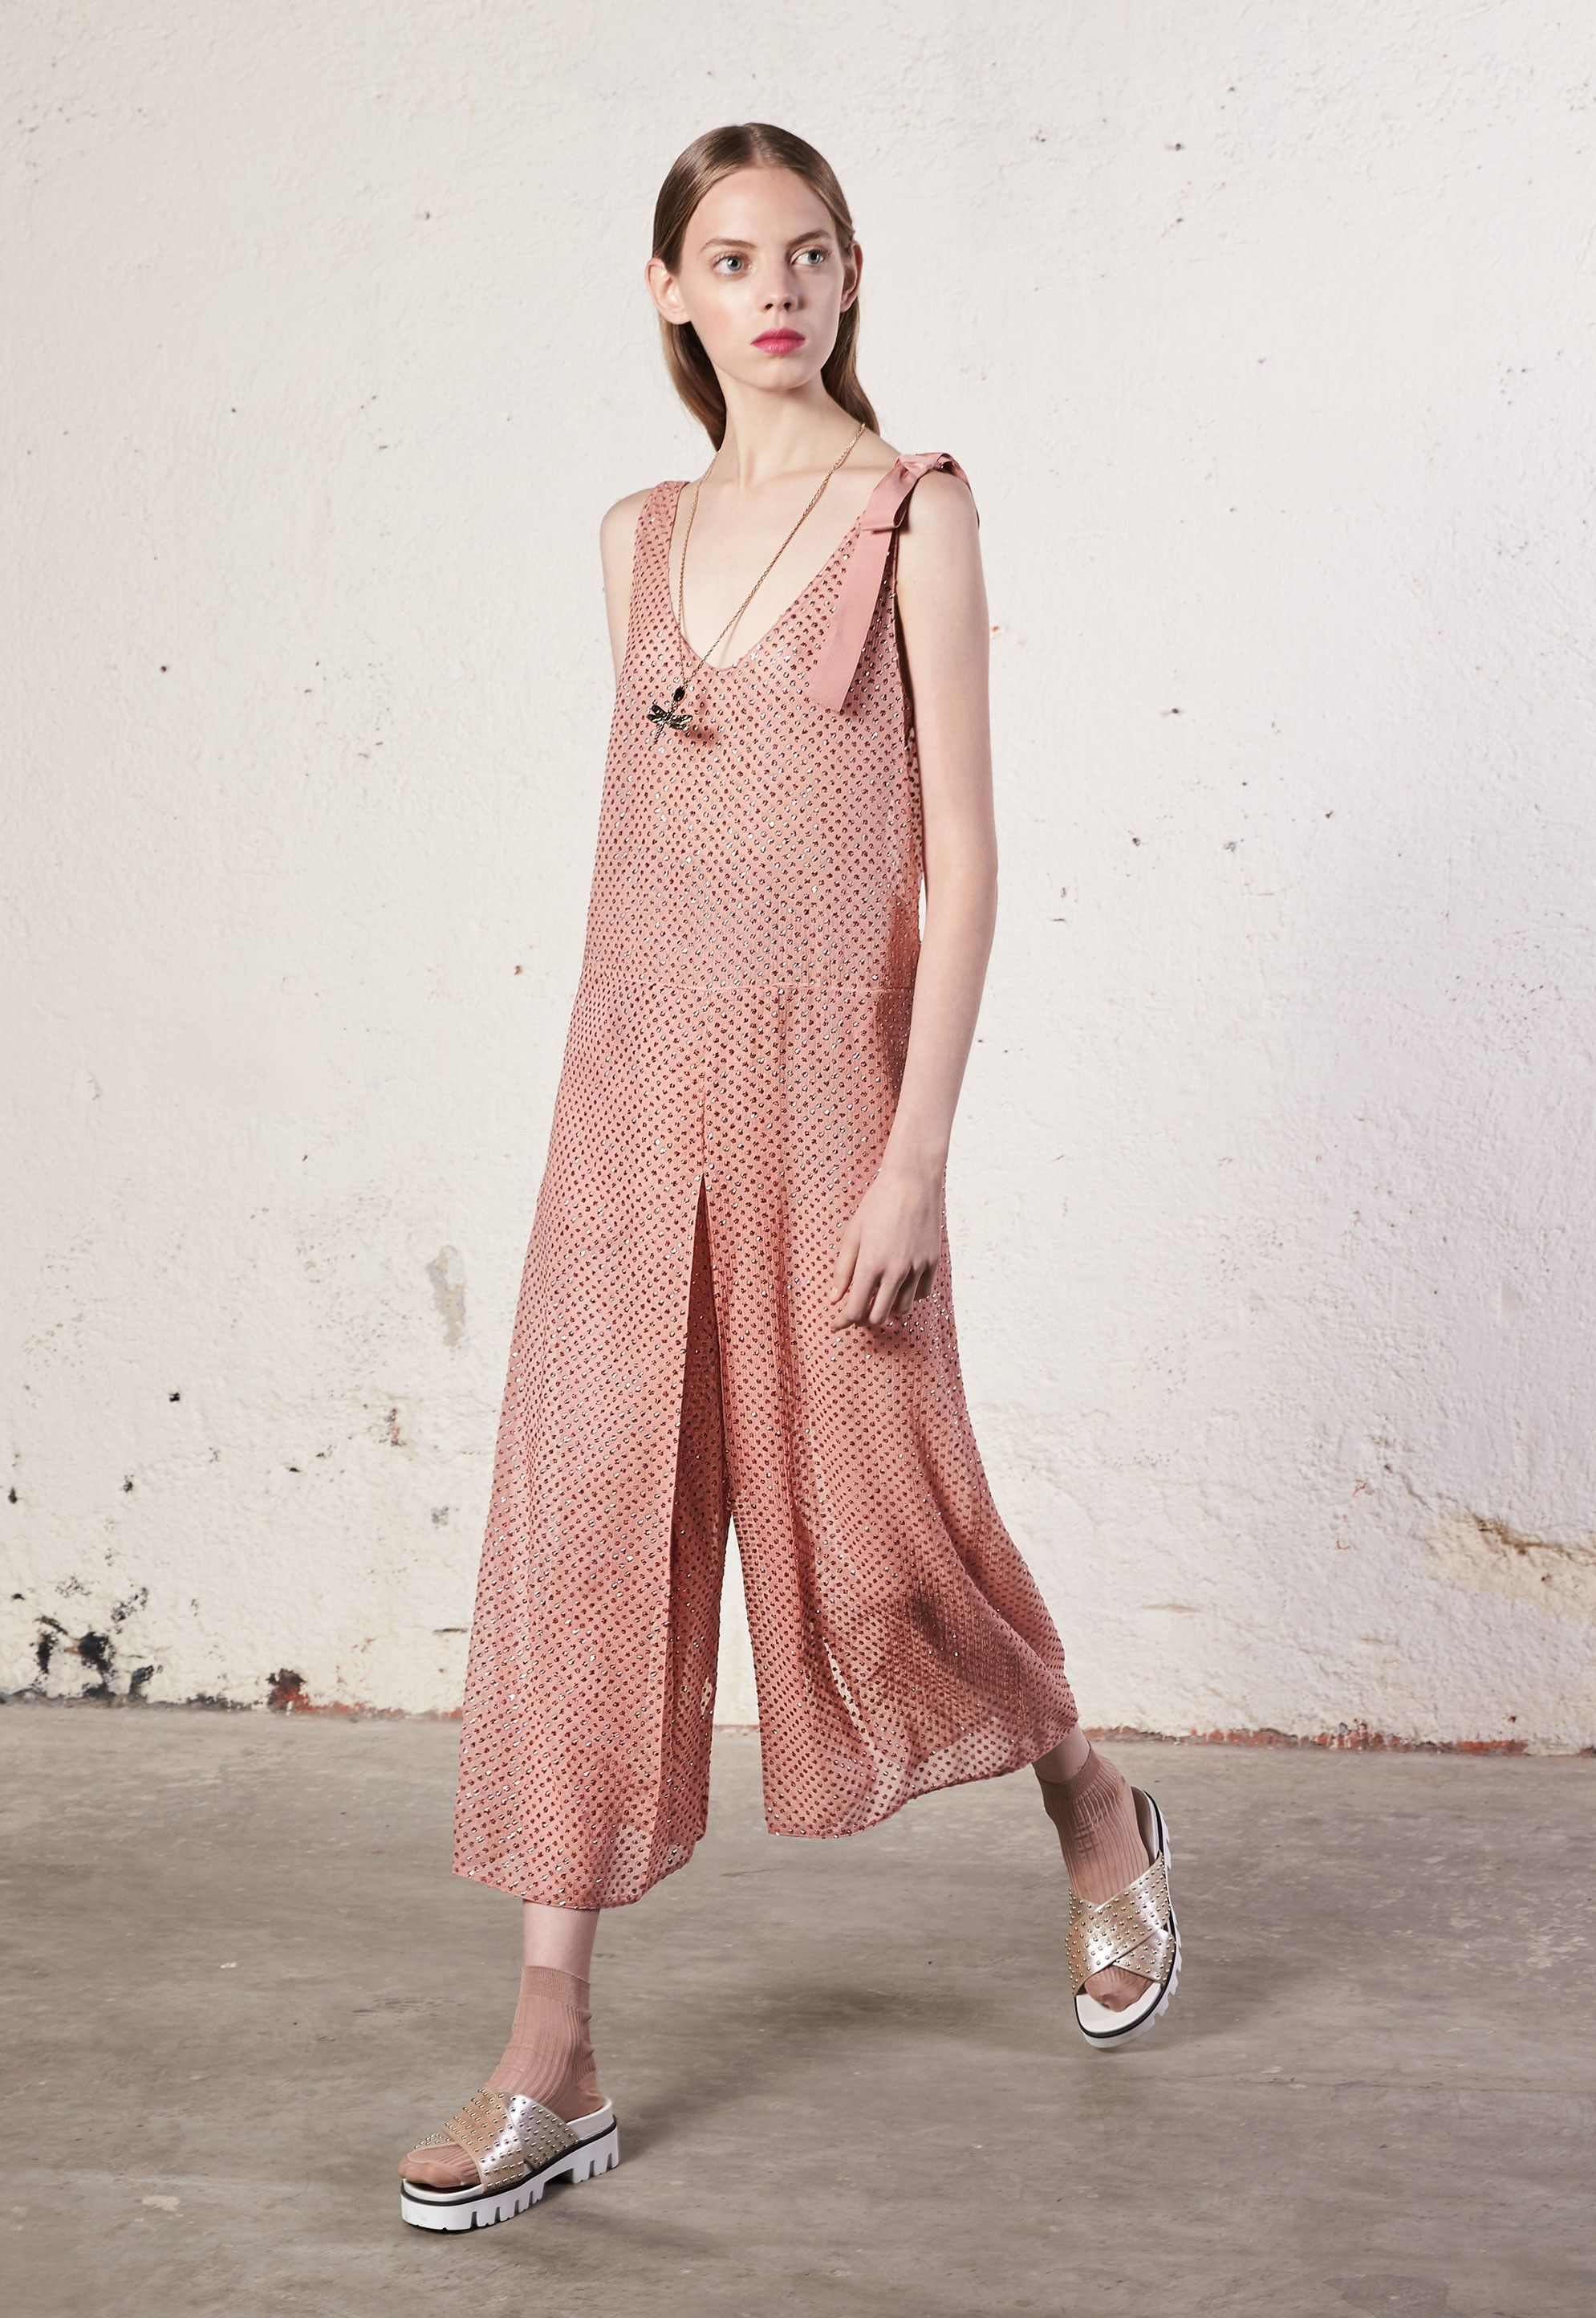 Red Valentino Resort 2018 Collection Photos - Vogue